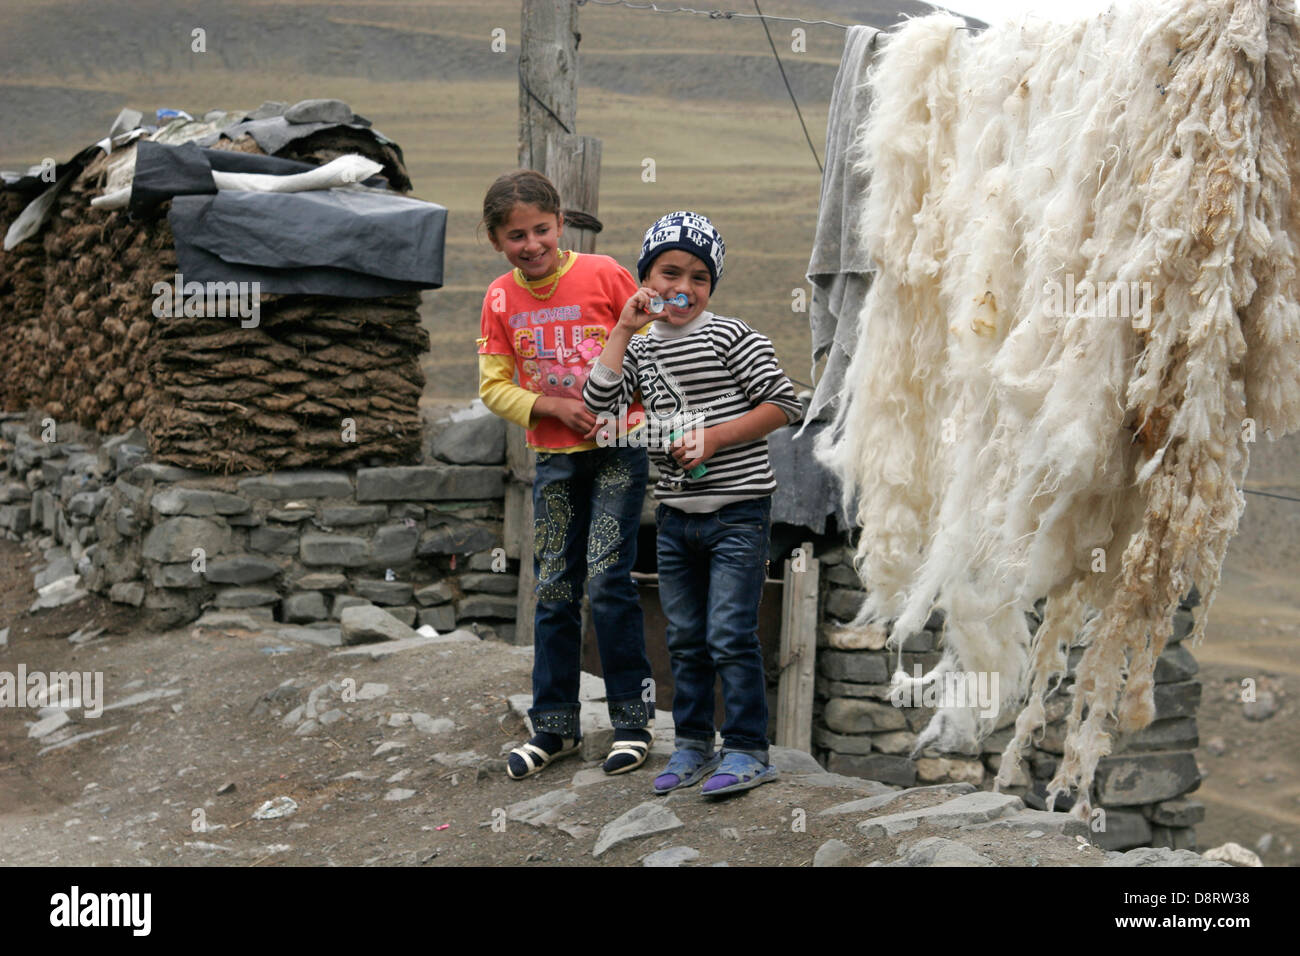 Local kids playing on the street of the shepherd mountain village of Xinaliq, Azerbaijan, Caucasus mountains - Stock Image